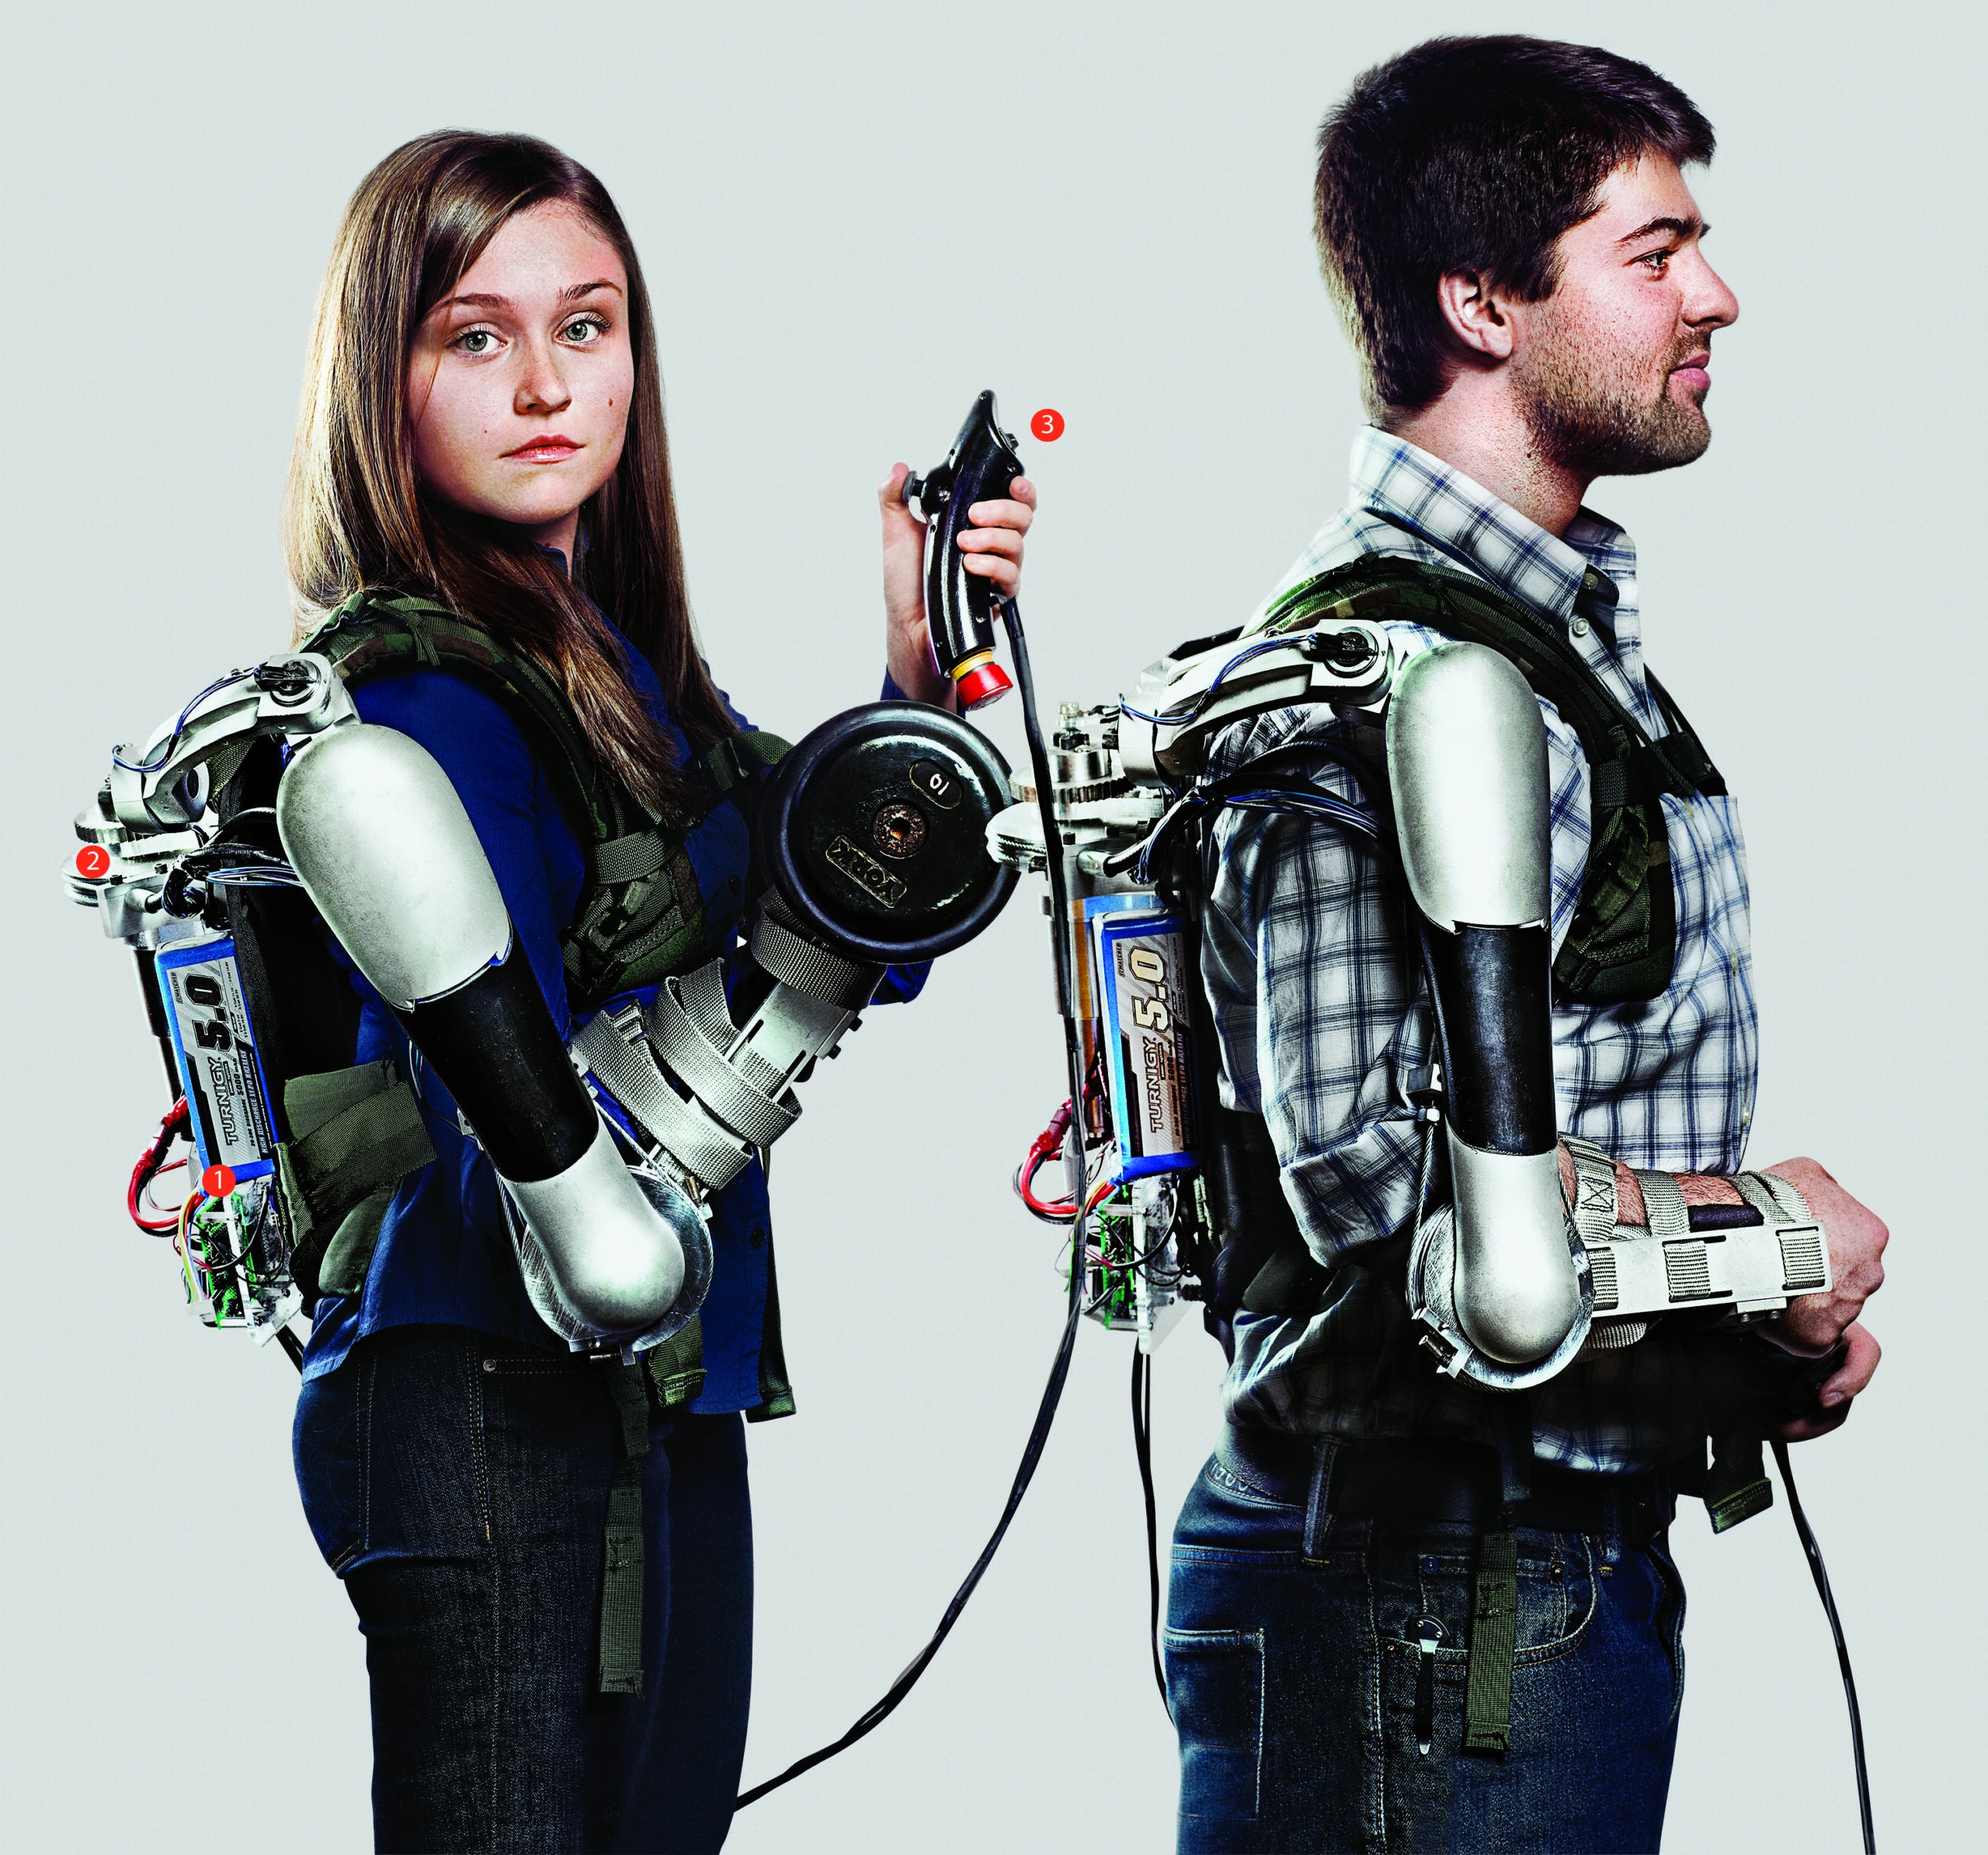 Invention Awards 2014: A Powerful, Portable, And Affordable Robotic Exoskeleton